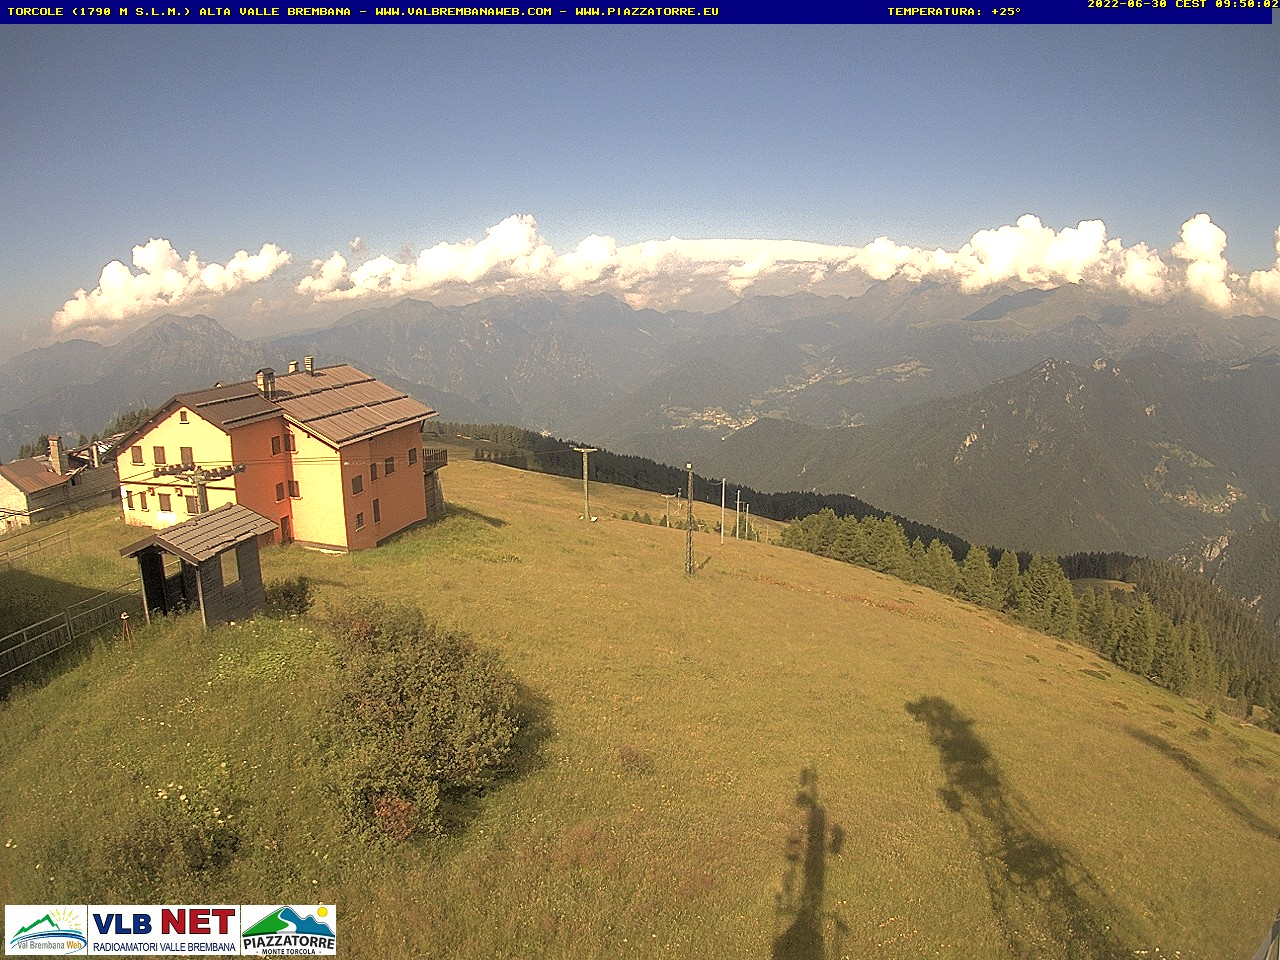 webcam monte torcole n. 47330